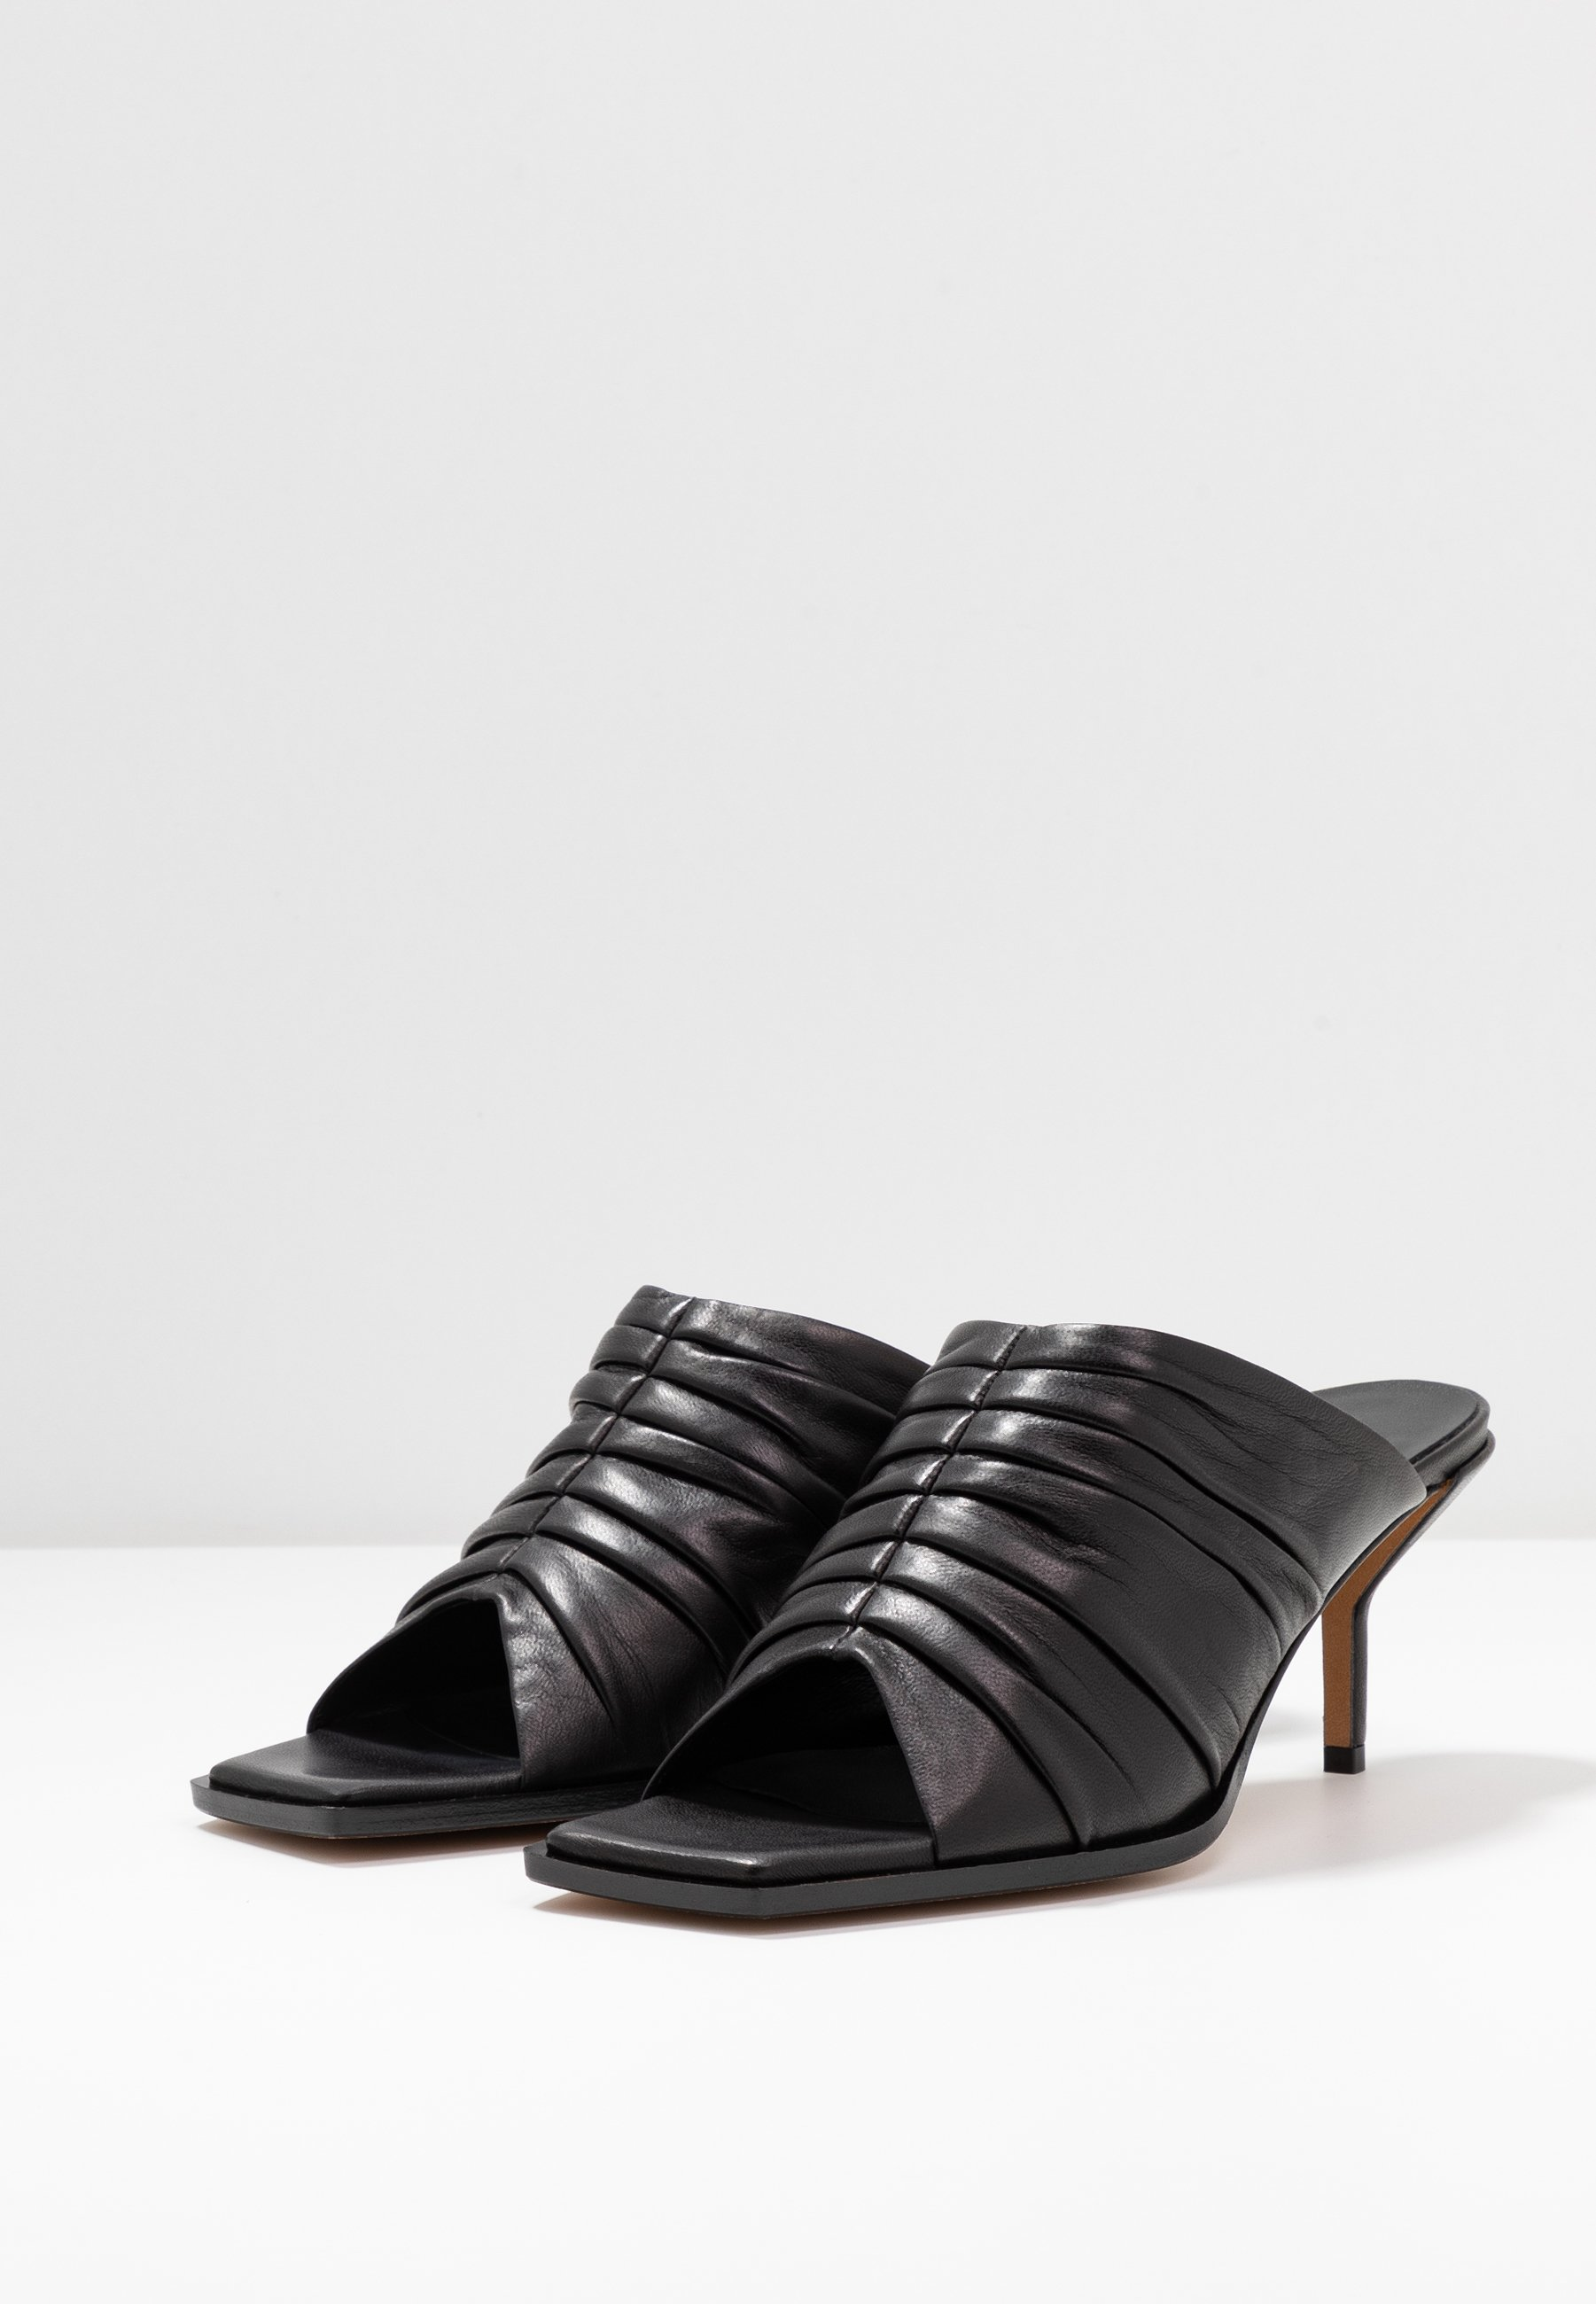 3.1 Phillip Lim GEORGIA RUCHED MULE - Klapki - black